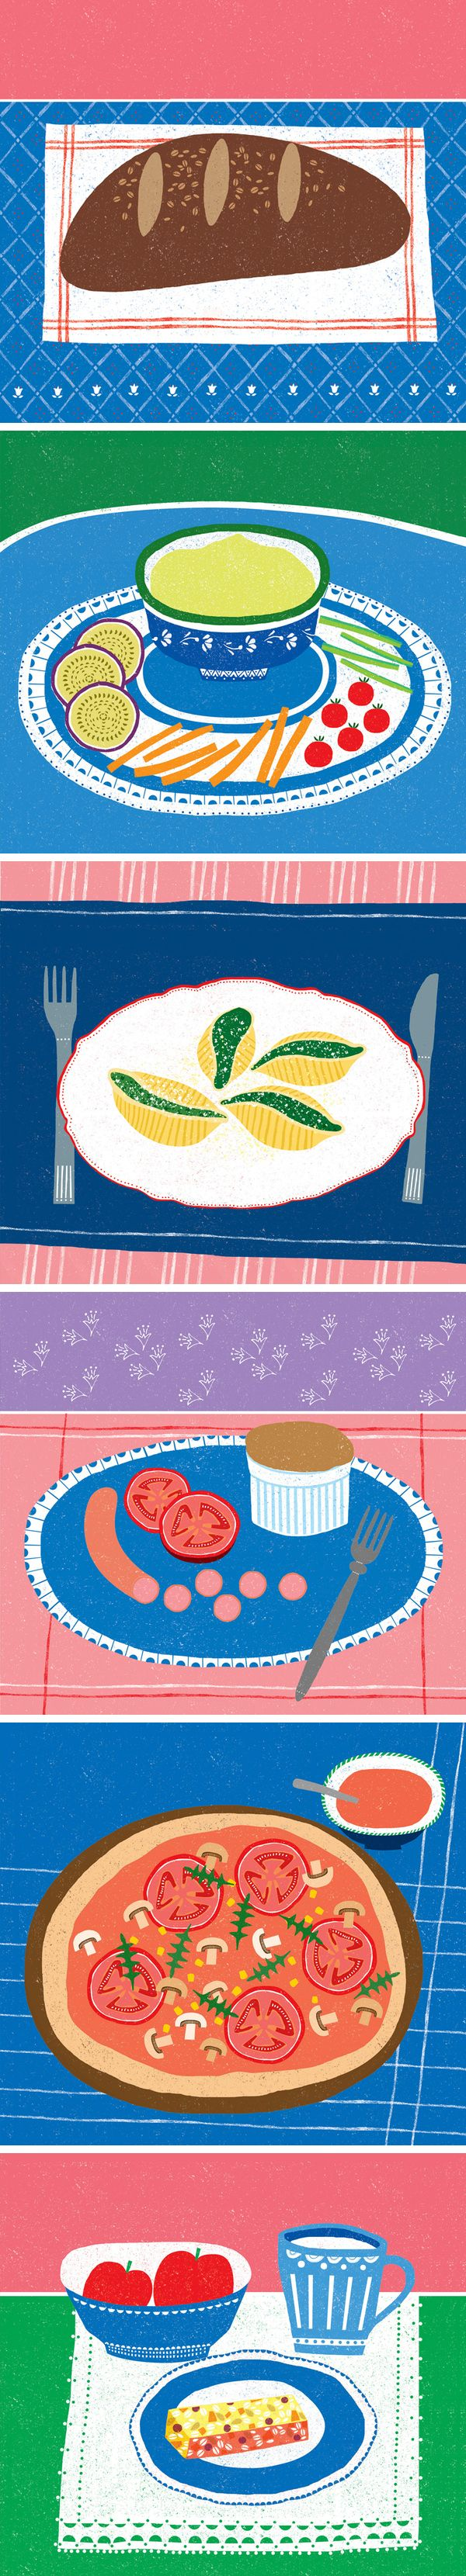 Food illustrations for the cookbook 'Mesék a konyhábol' by Viktoria Cikos